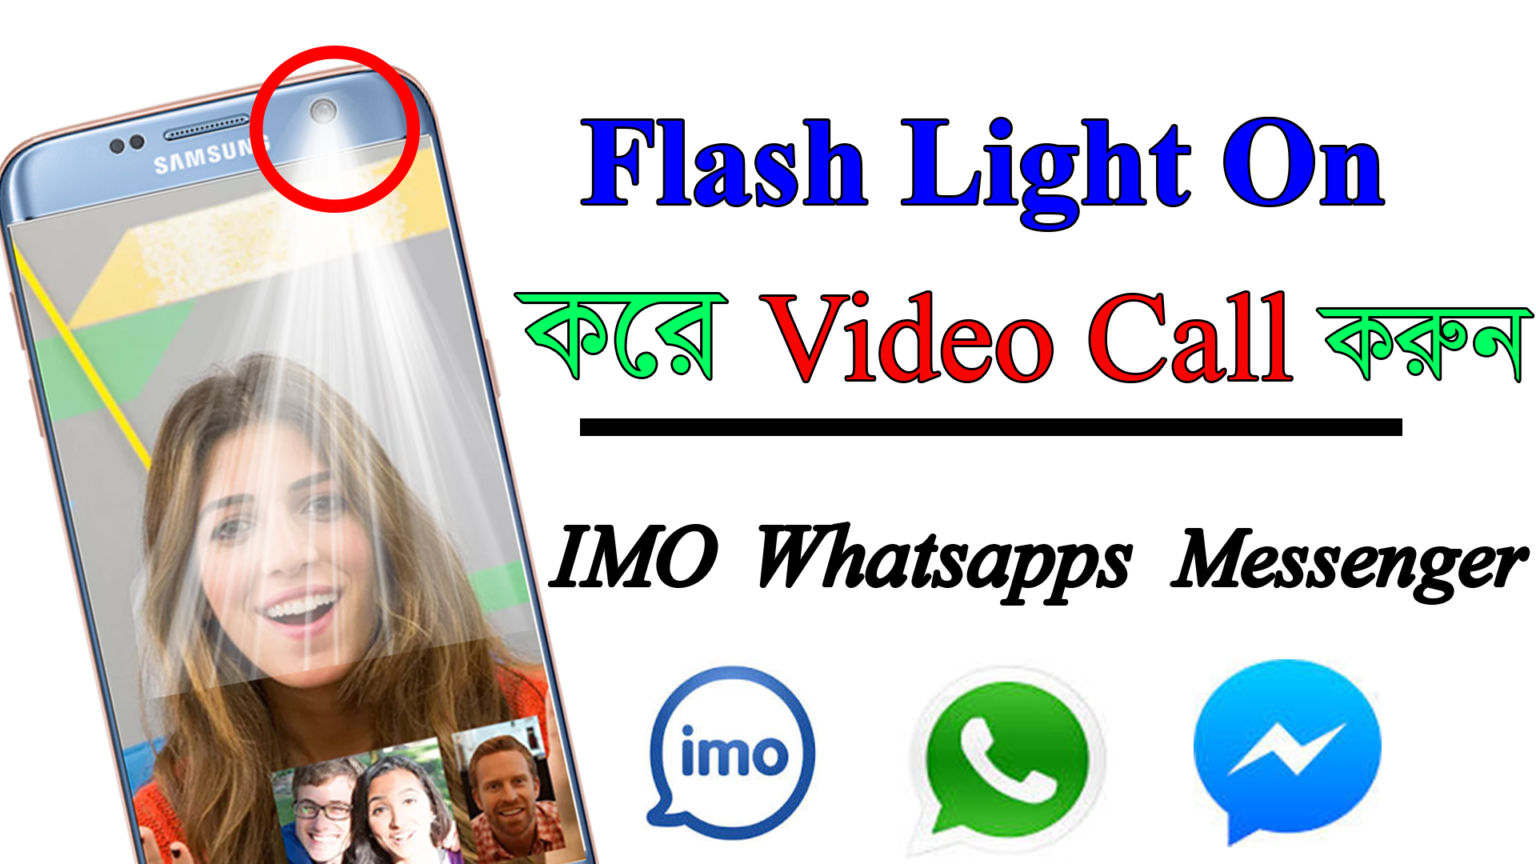 imo video call with flashlight Archives - Trickbd com